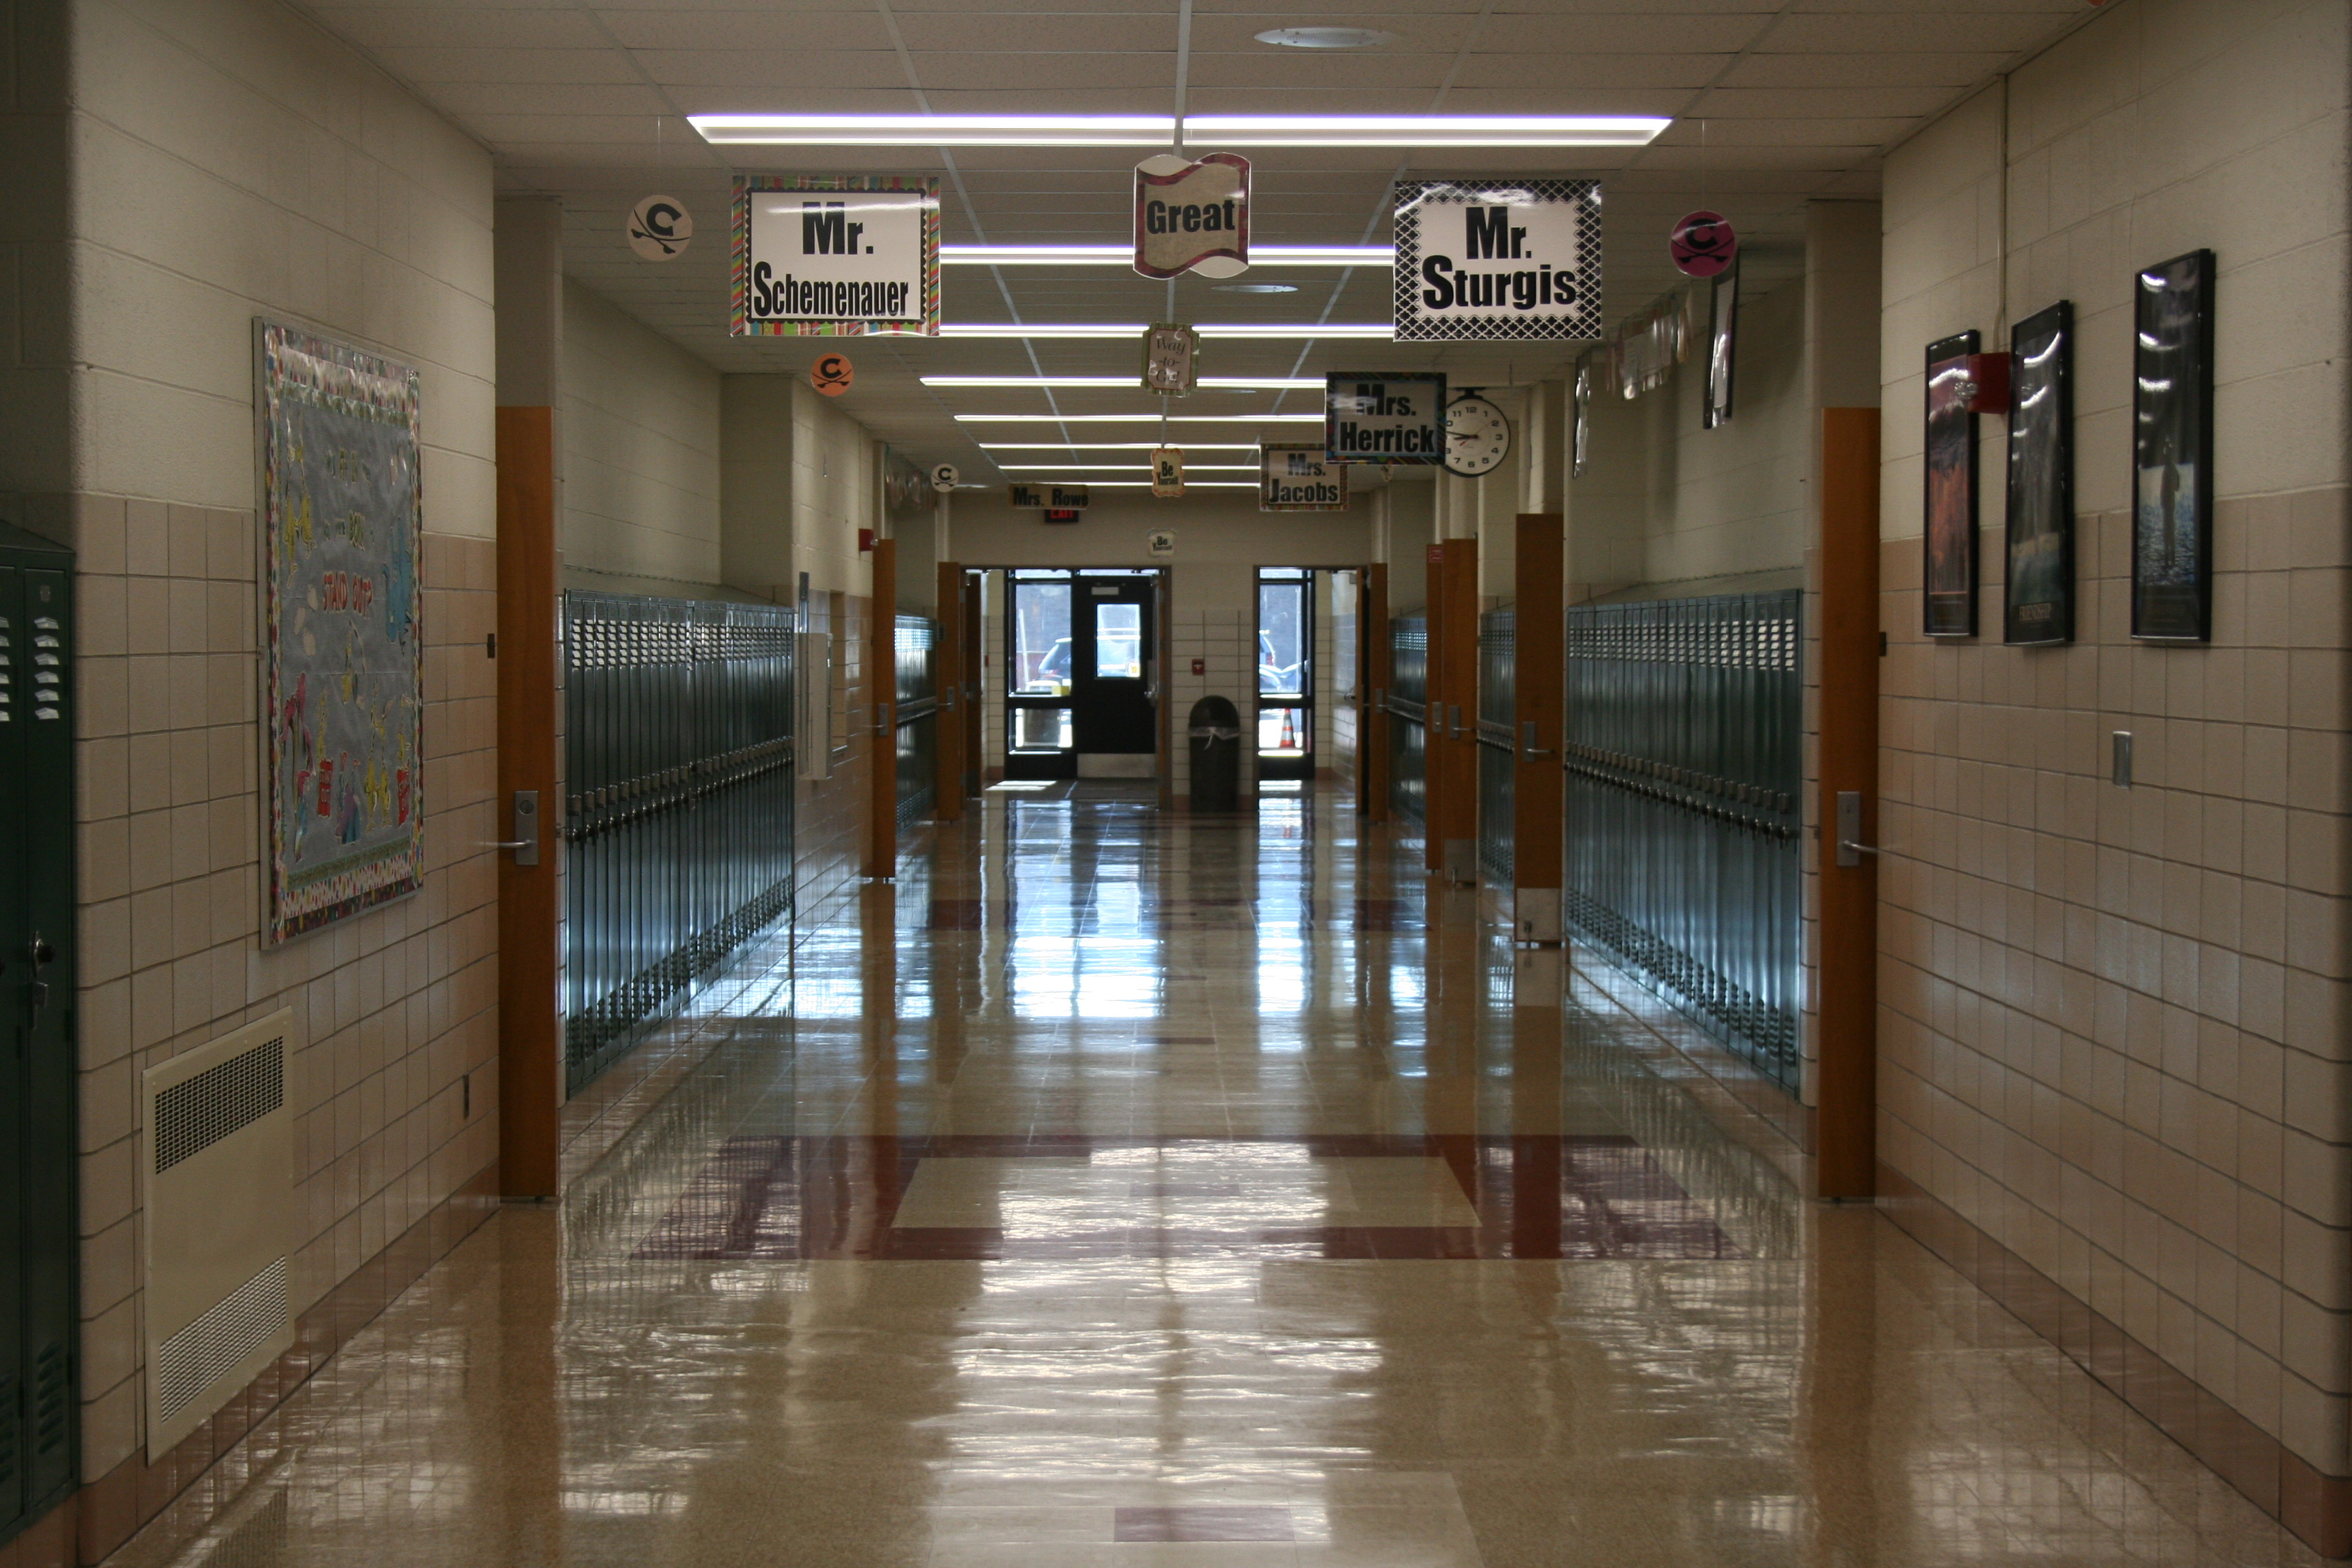 Shinny Hallways Welcome Students at CMS